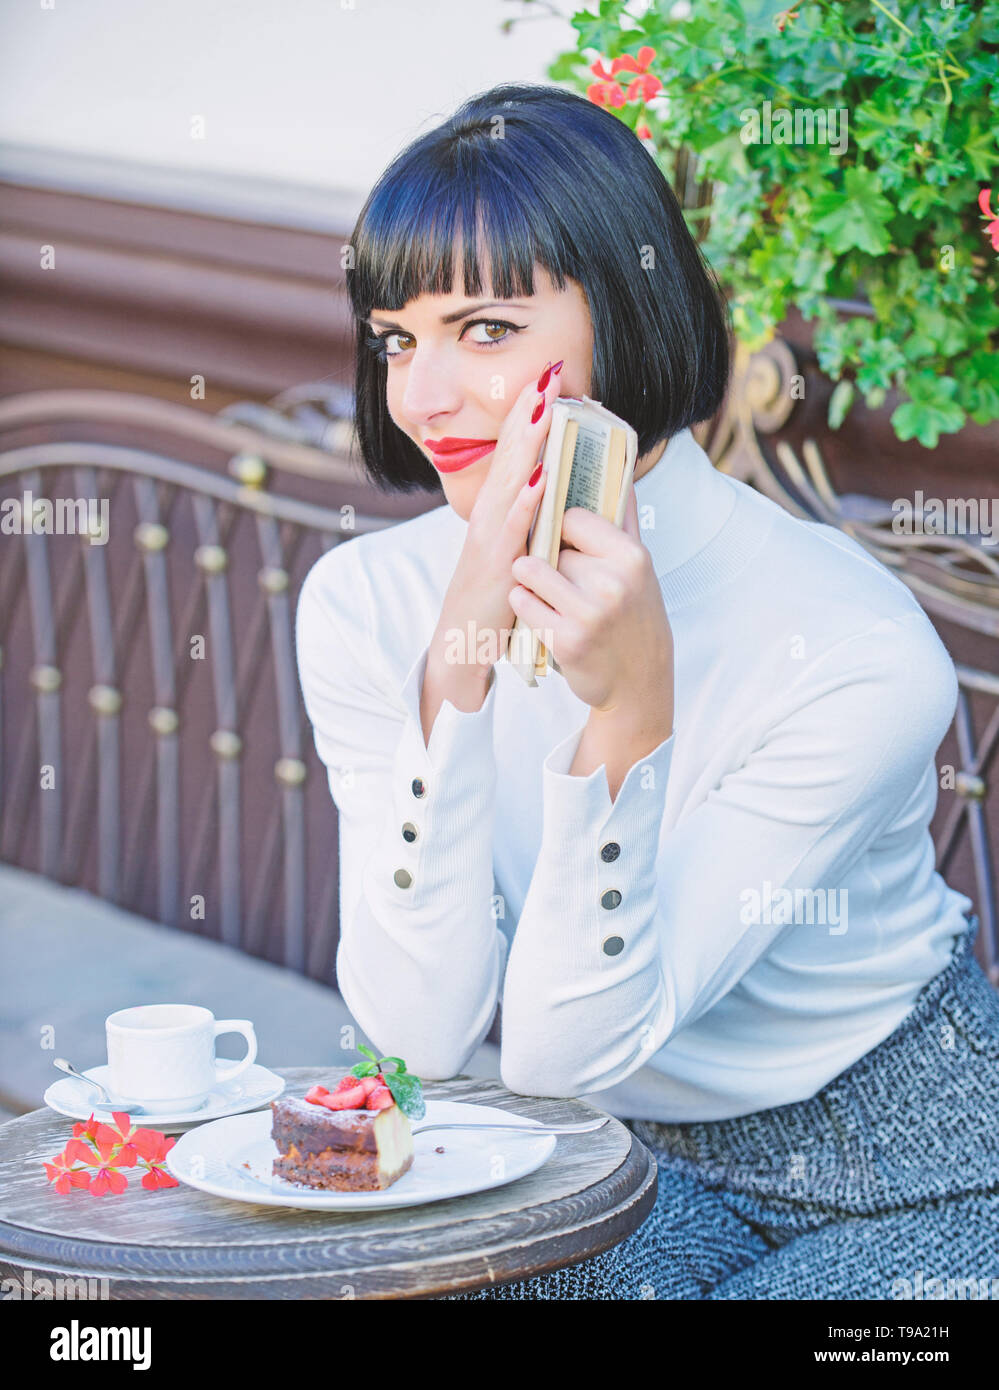 Self improvement concept. Woman have drink enjoy reading good book cafe terrace. Modern literature for female. Business lady read book during coffee break. Coffee and good book for perfect weekend. - Stock Image